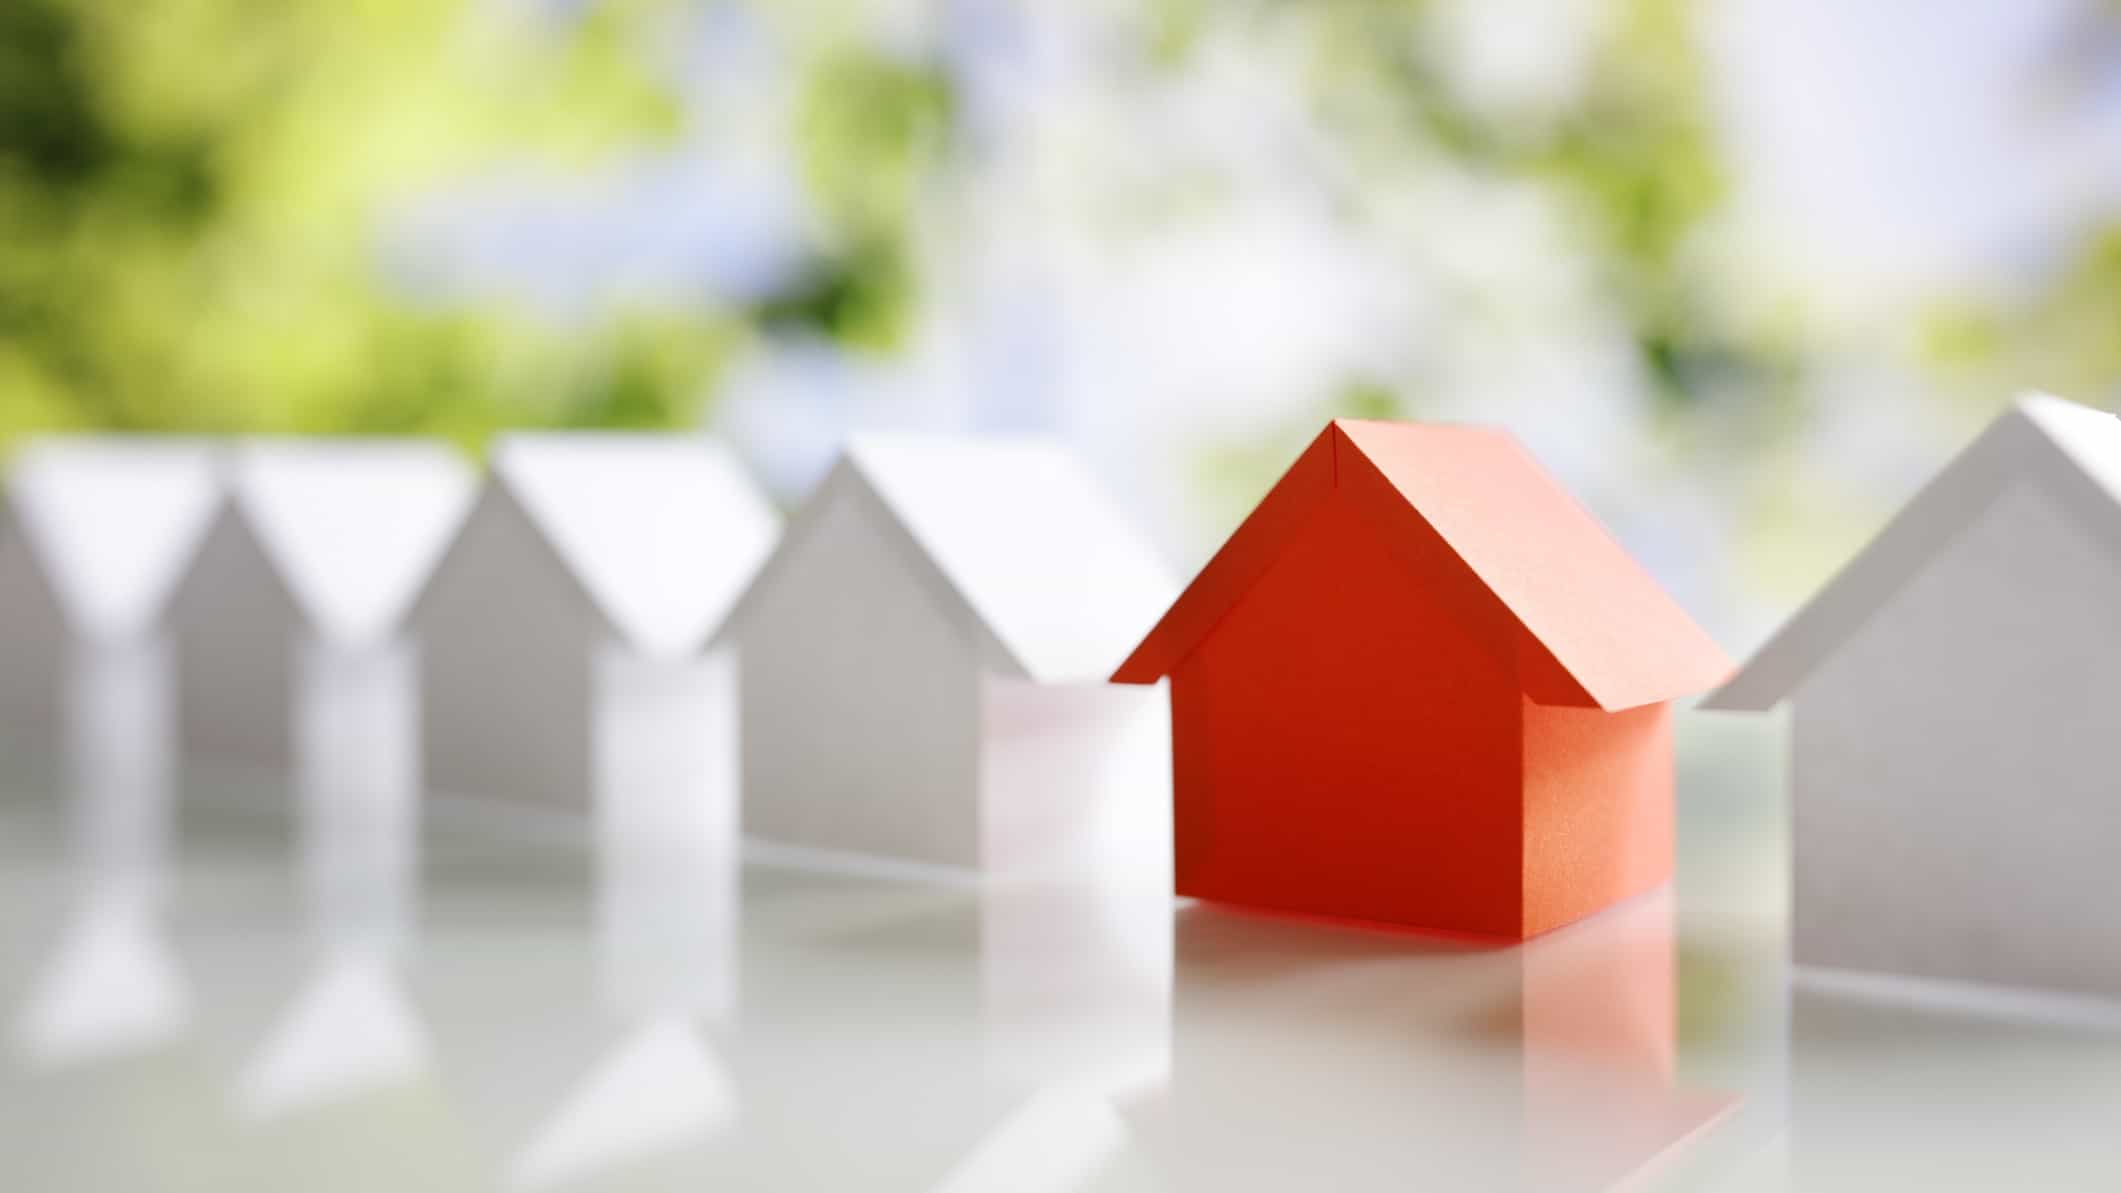 asx shares for housing boom represented by row of miniature white paper houses with one red house